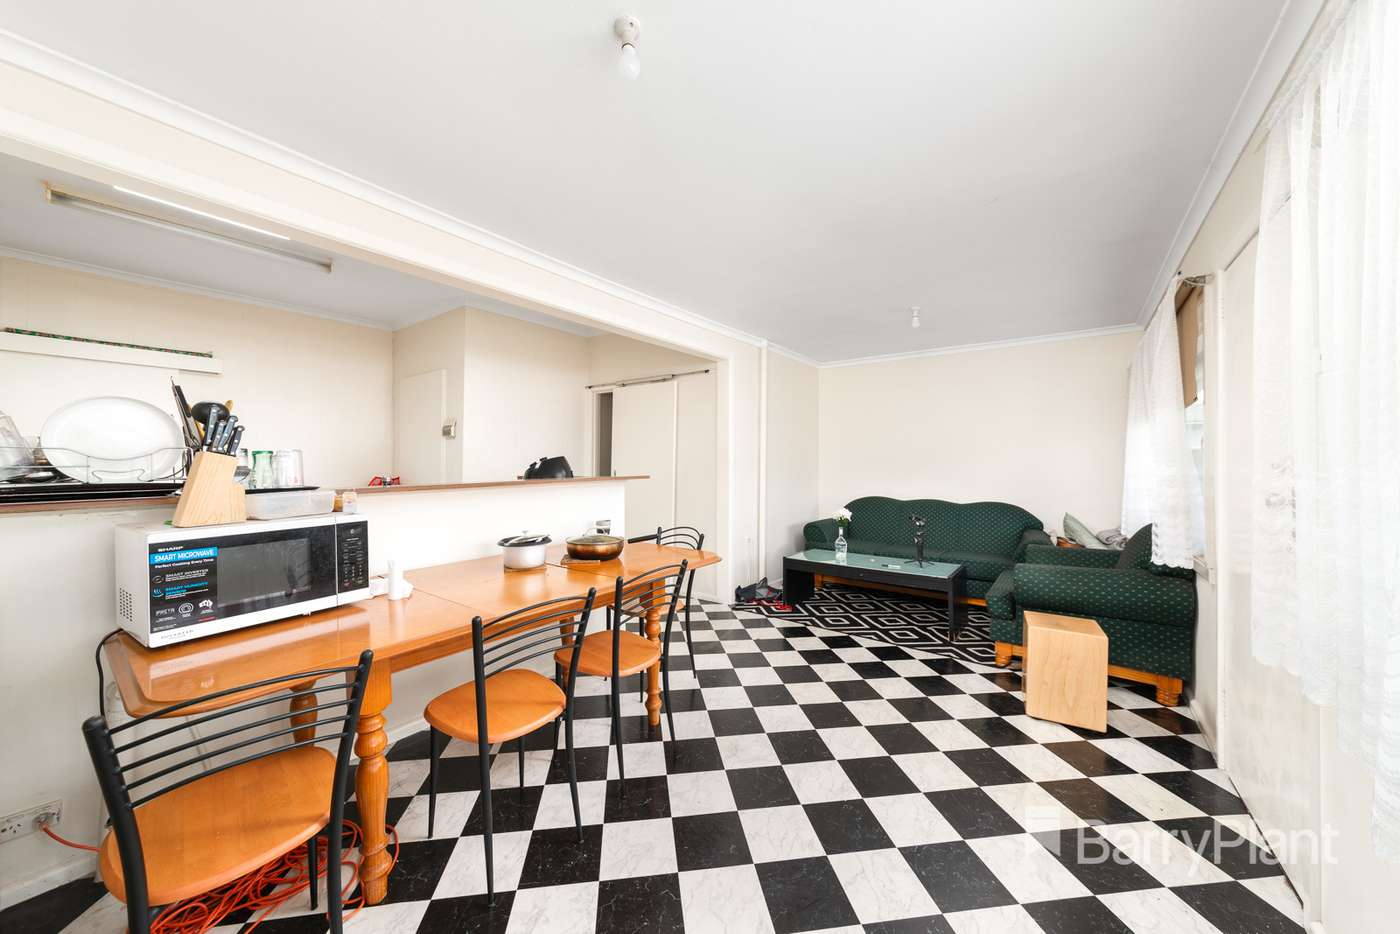 Fifth view of Homely house listing, 15 Isla Avenue, Glenroy VIC 3046